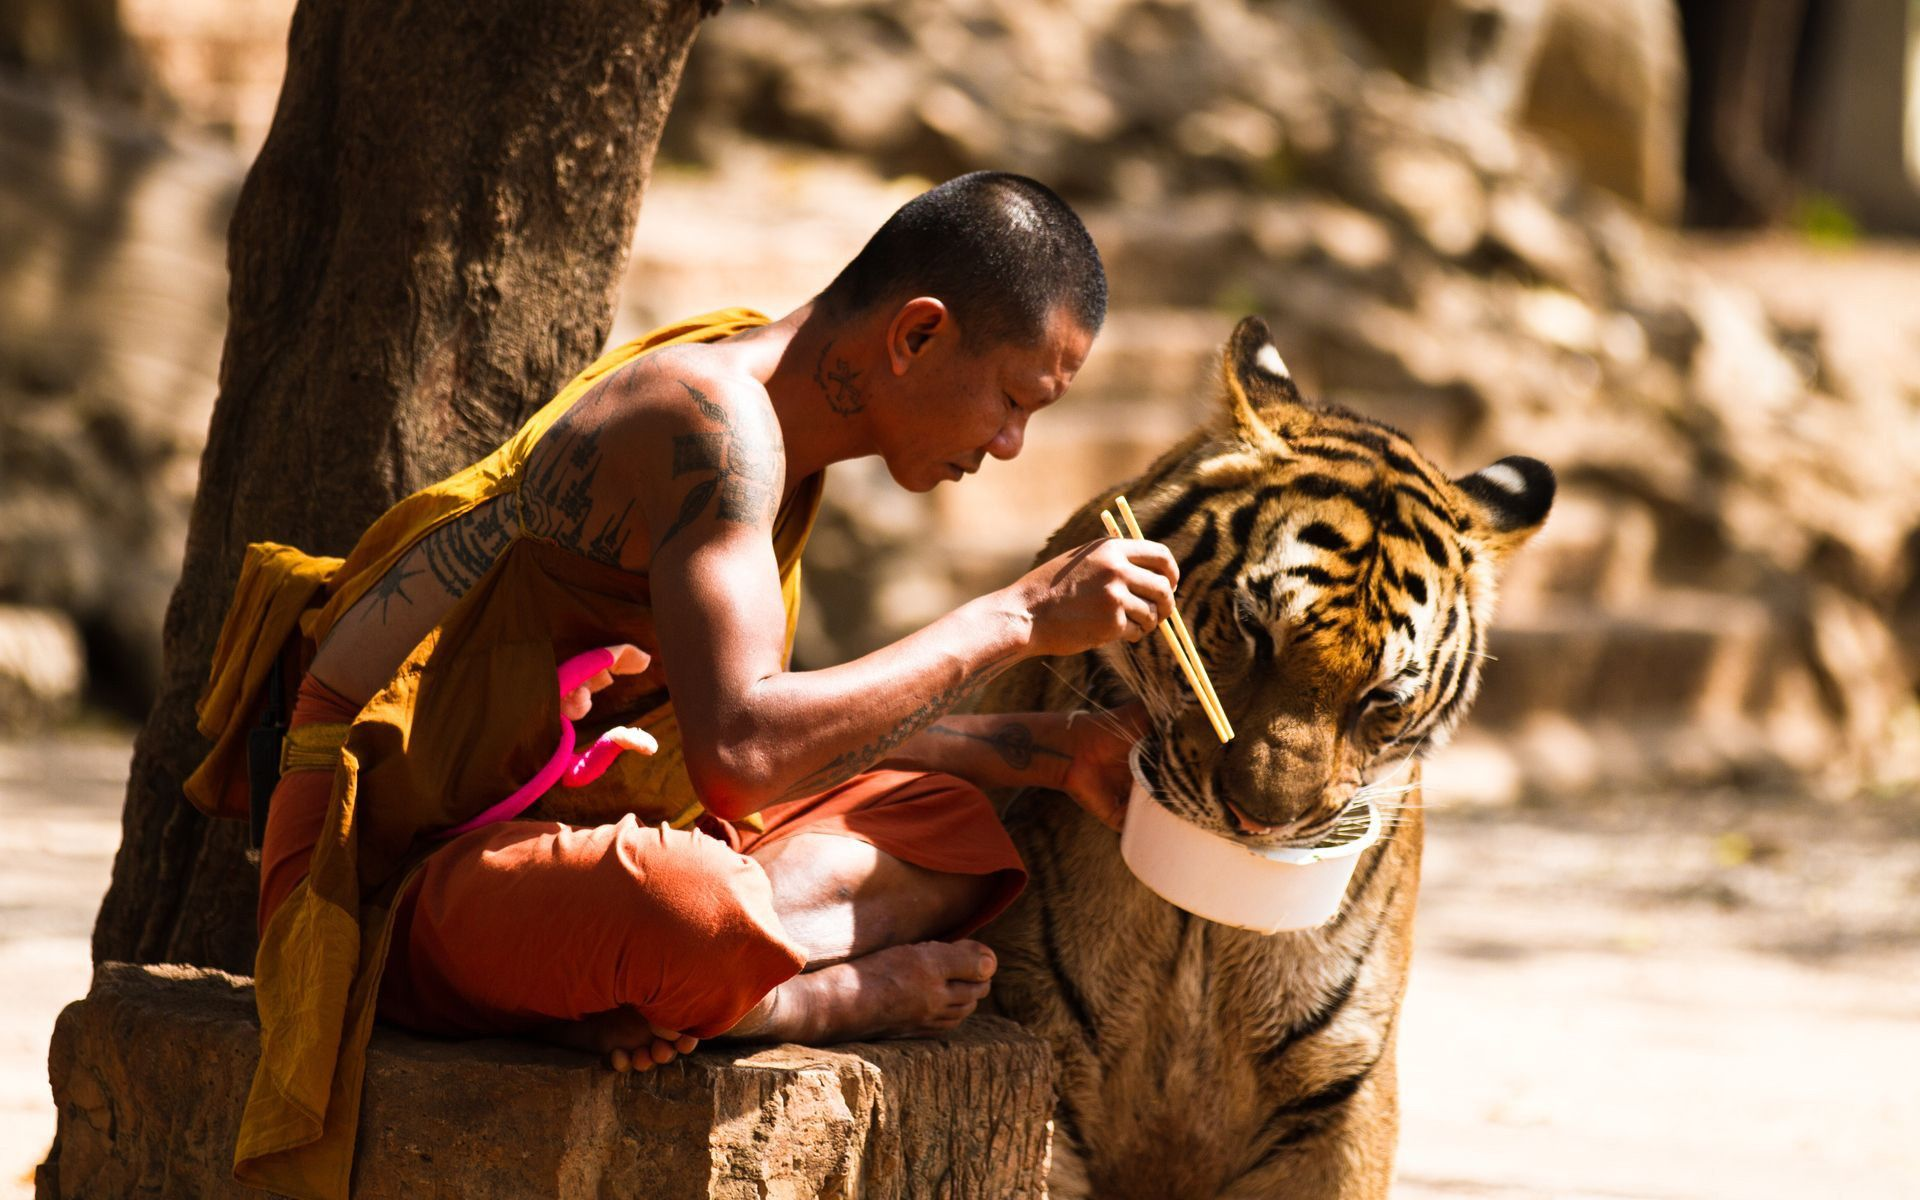 The monk and tiger